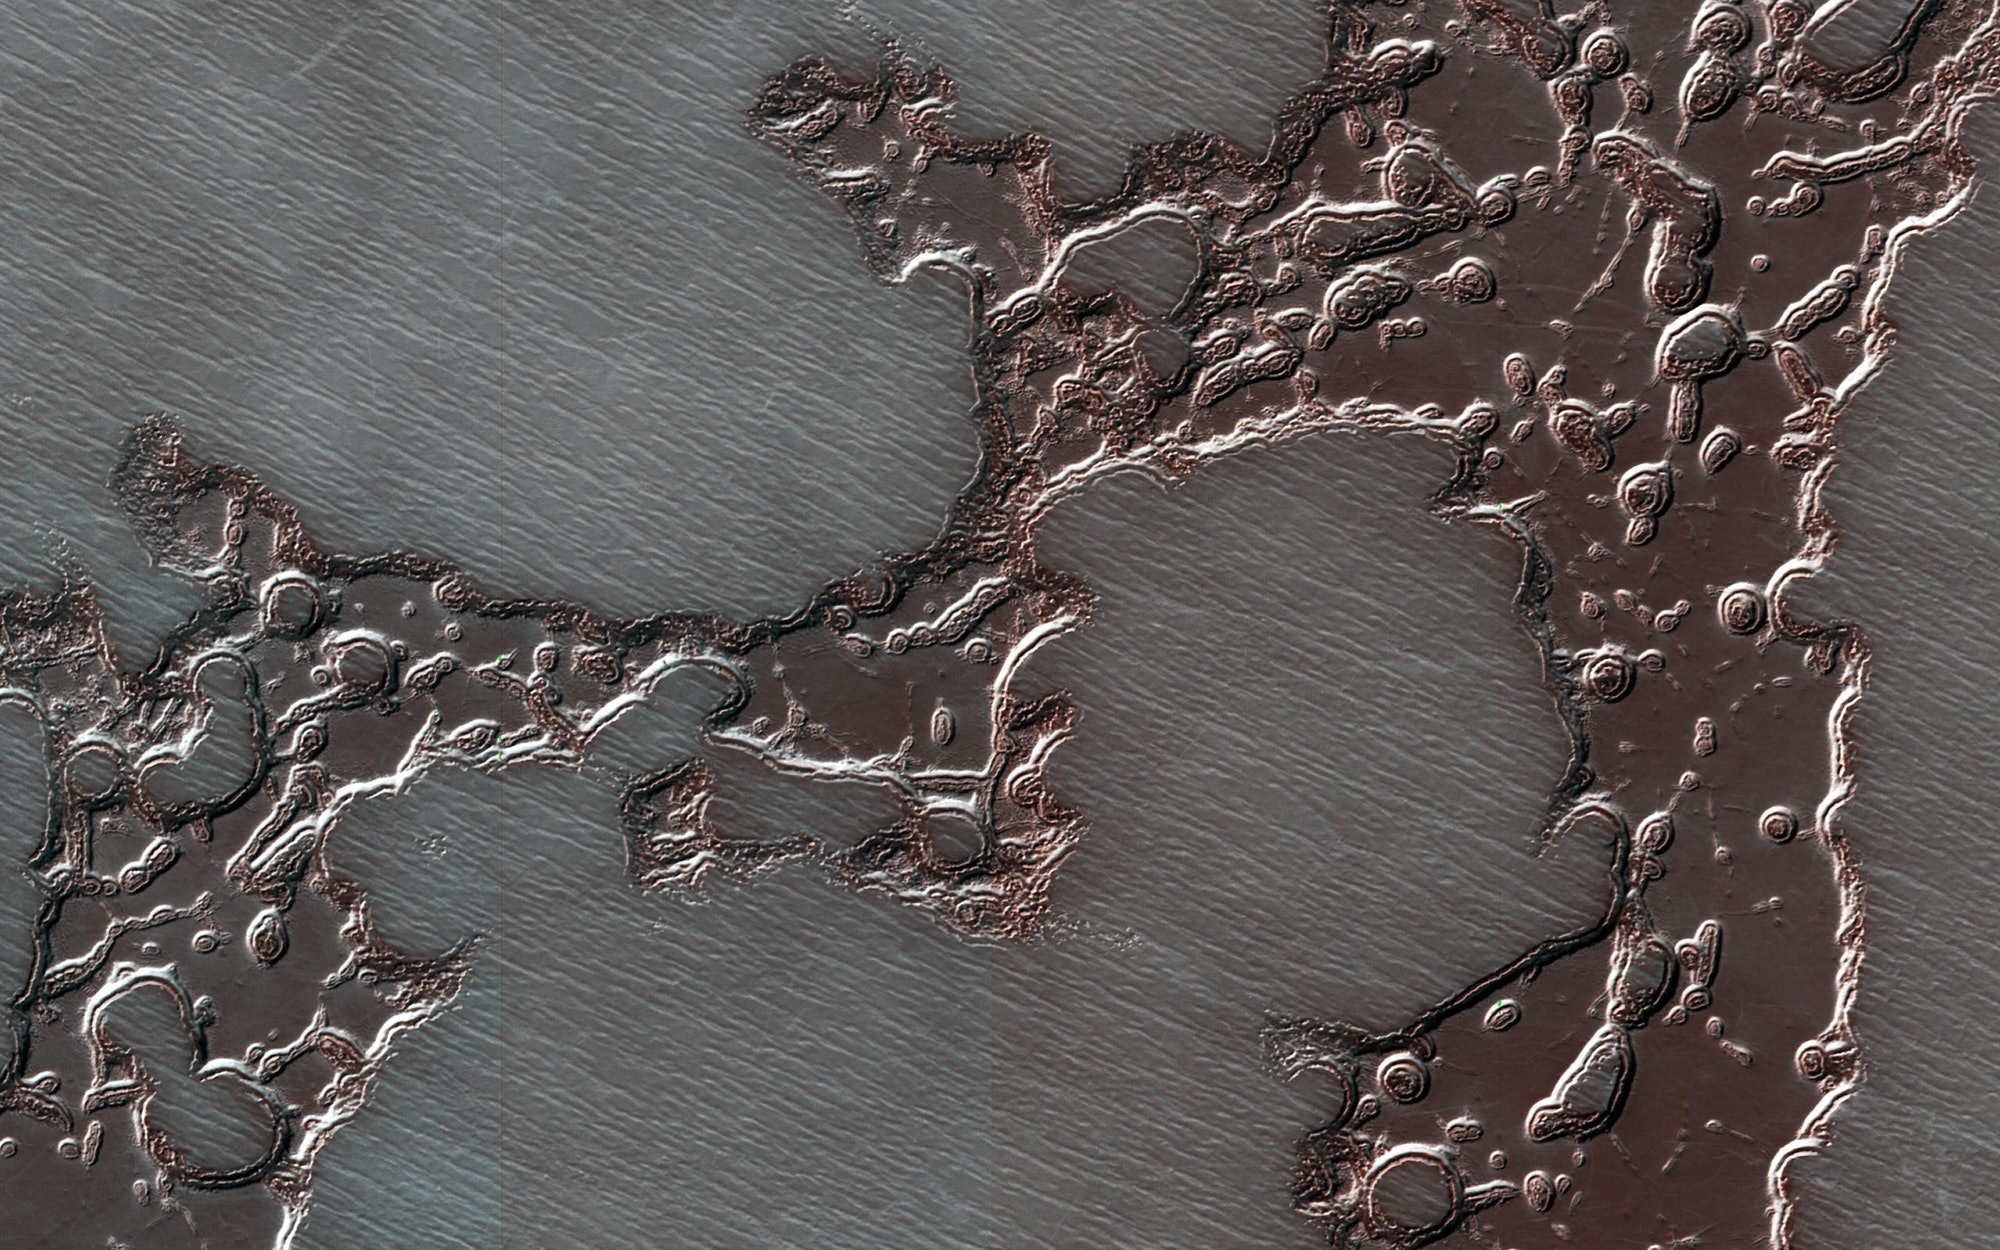 A mesa of frozen carbon dioxide at Mars' south pole.